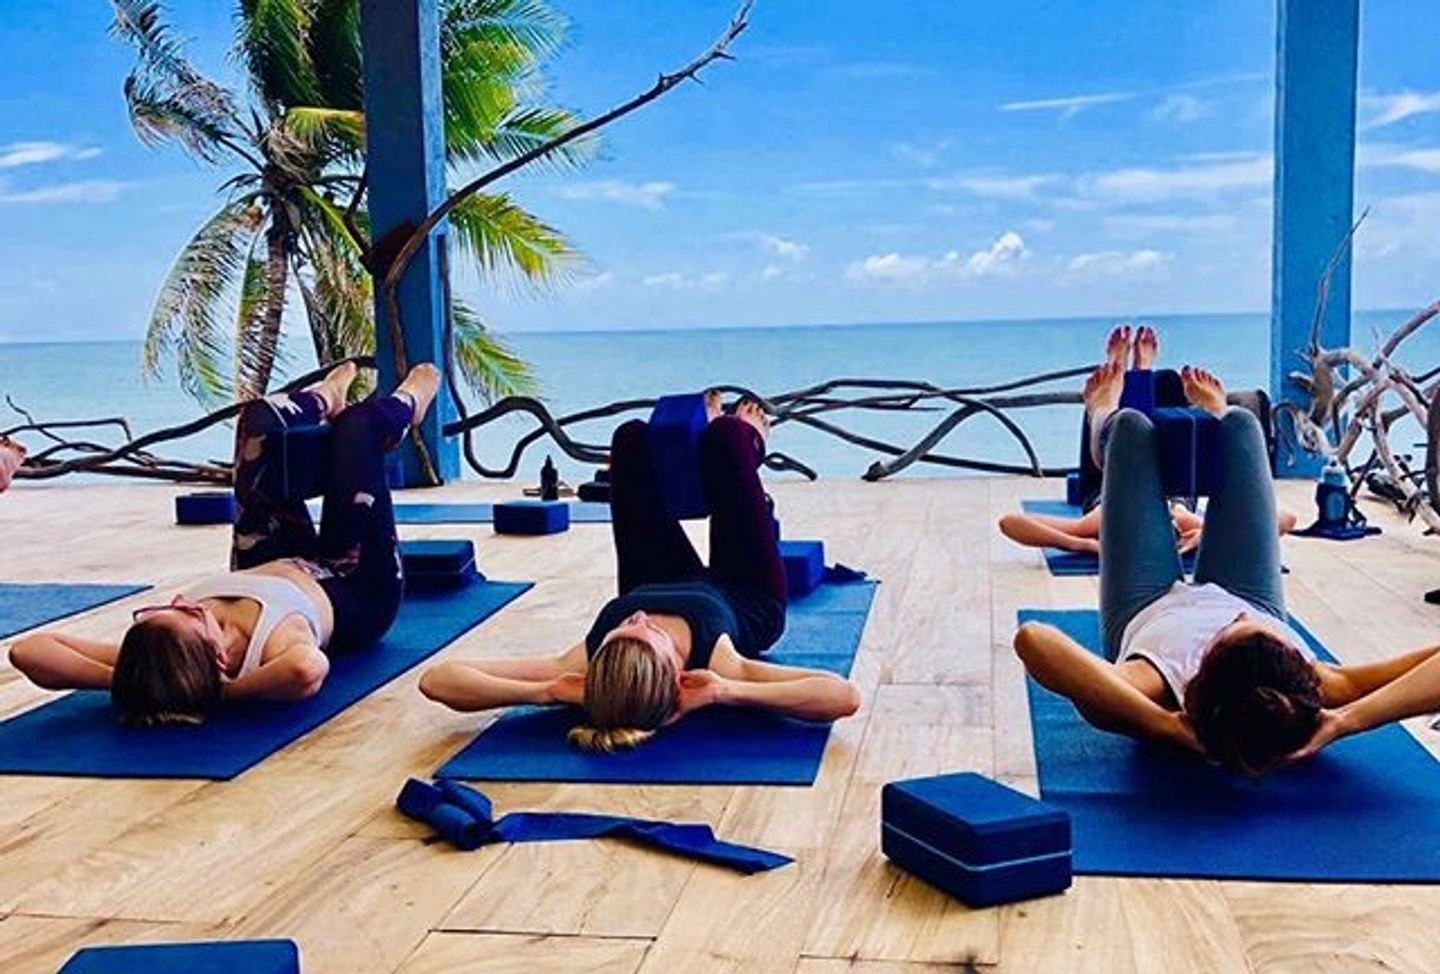 Retreat to Bliss: Yoga, Pilates, Meditation and More